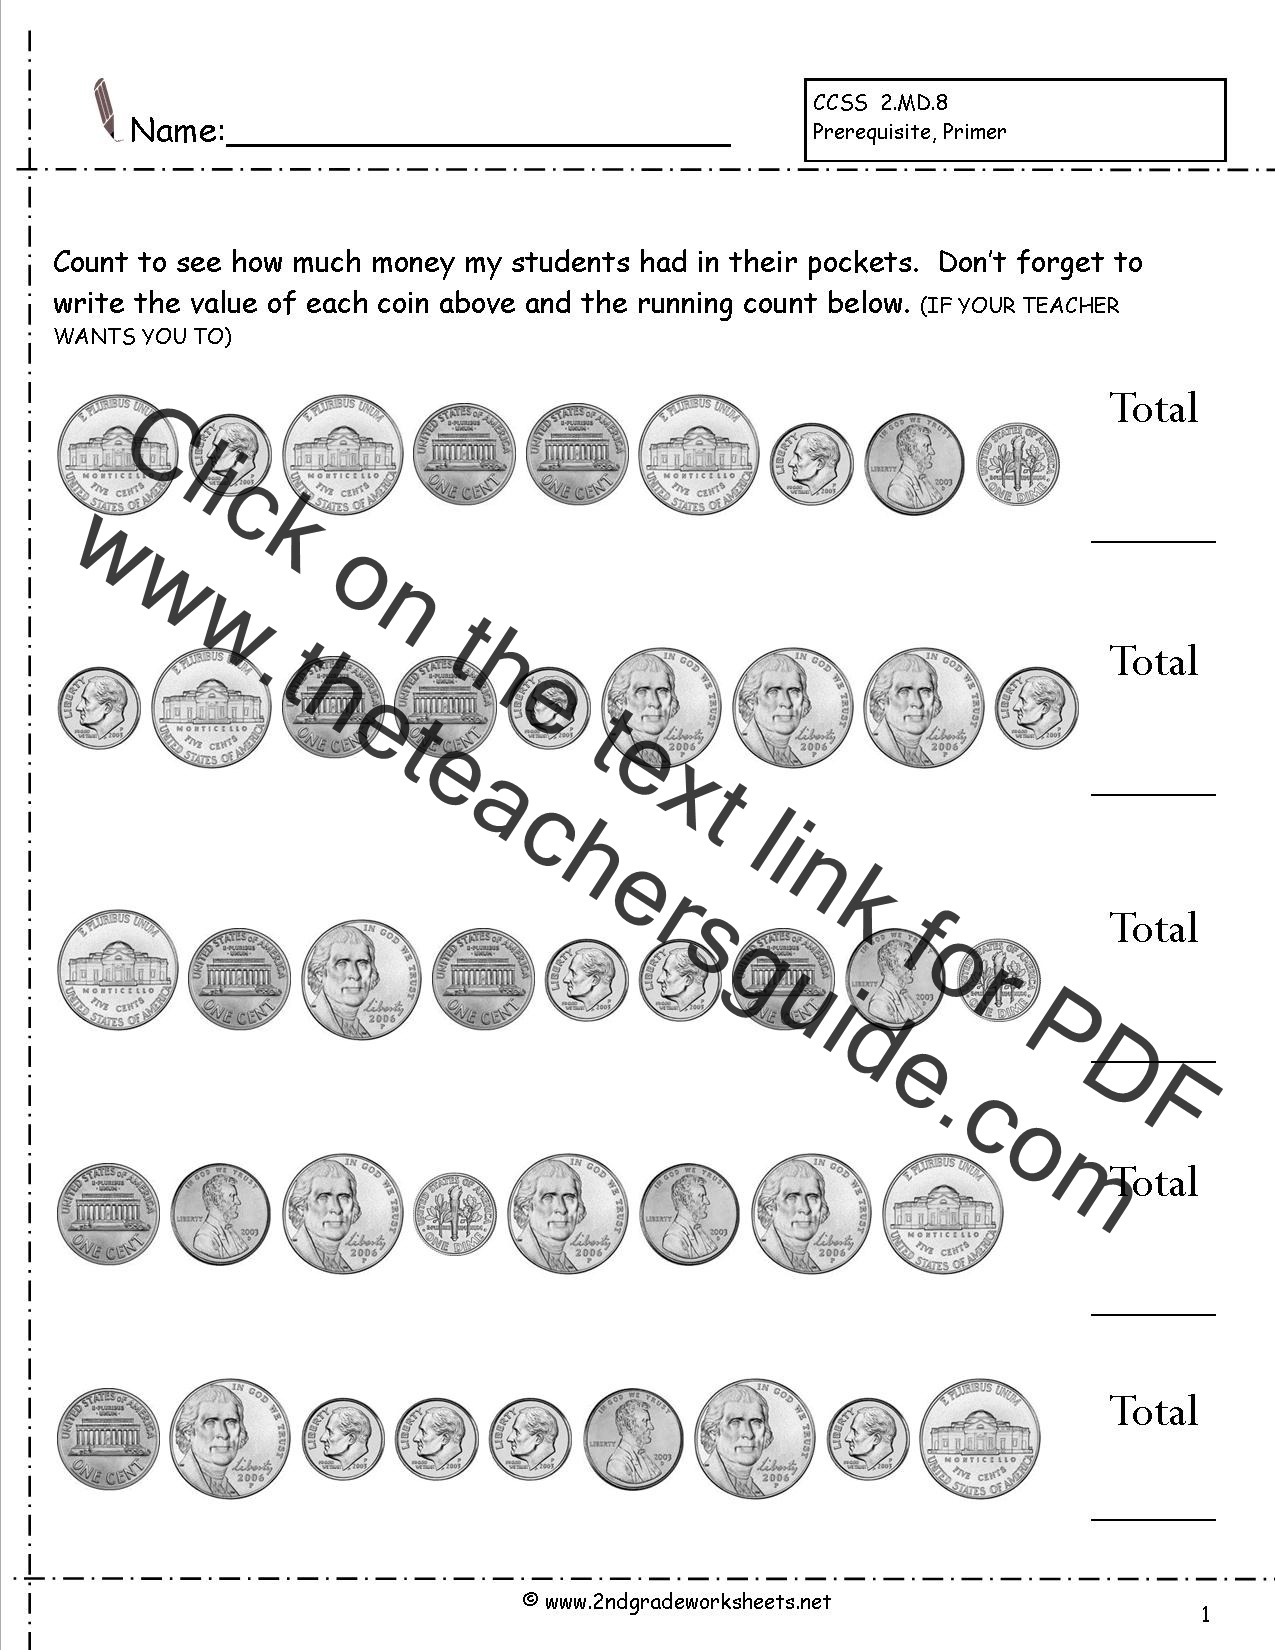 math worksheet : ccss 2 md 8 worksheets counting coins worksheets money  : Common Core Math Grade 2 Worksheets